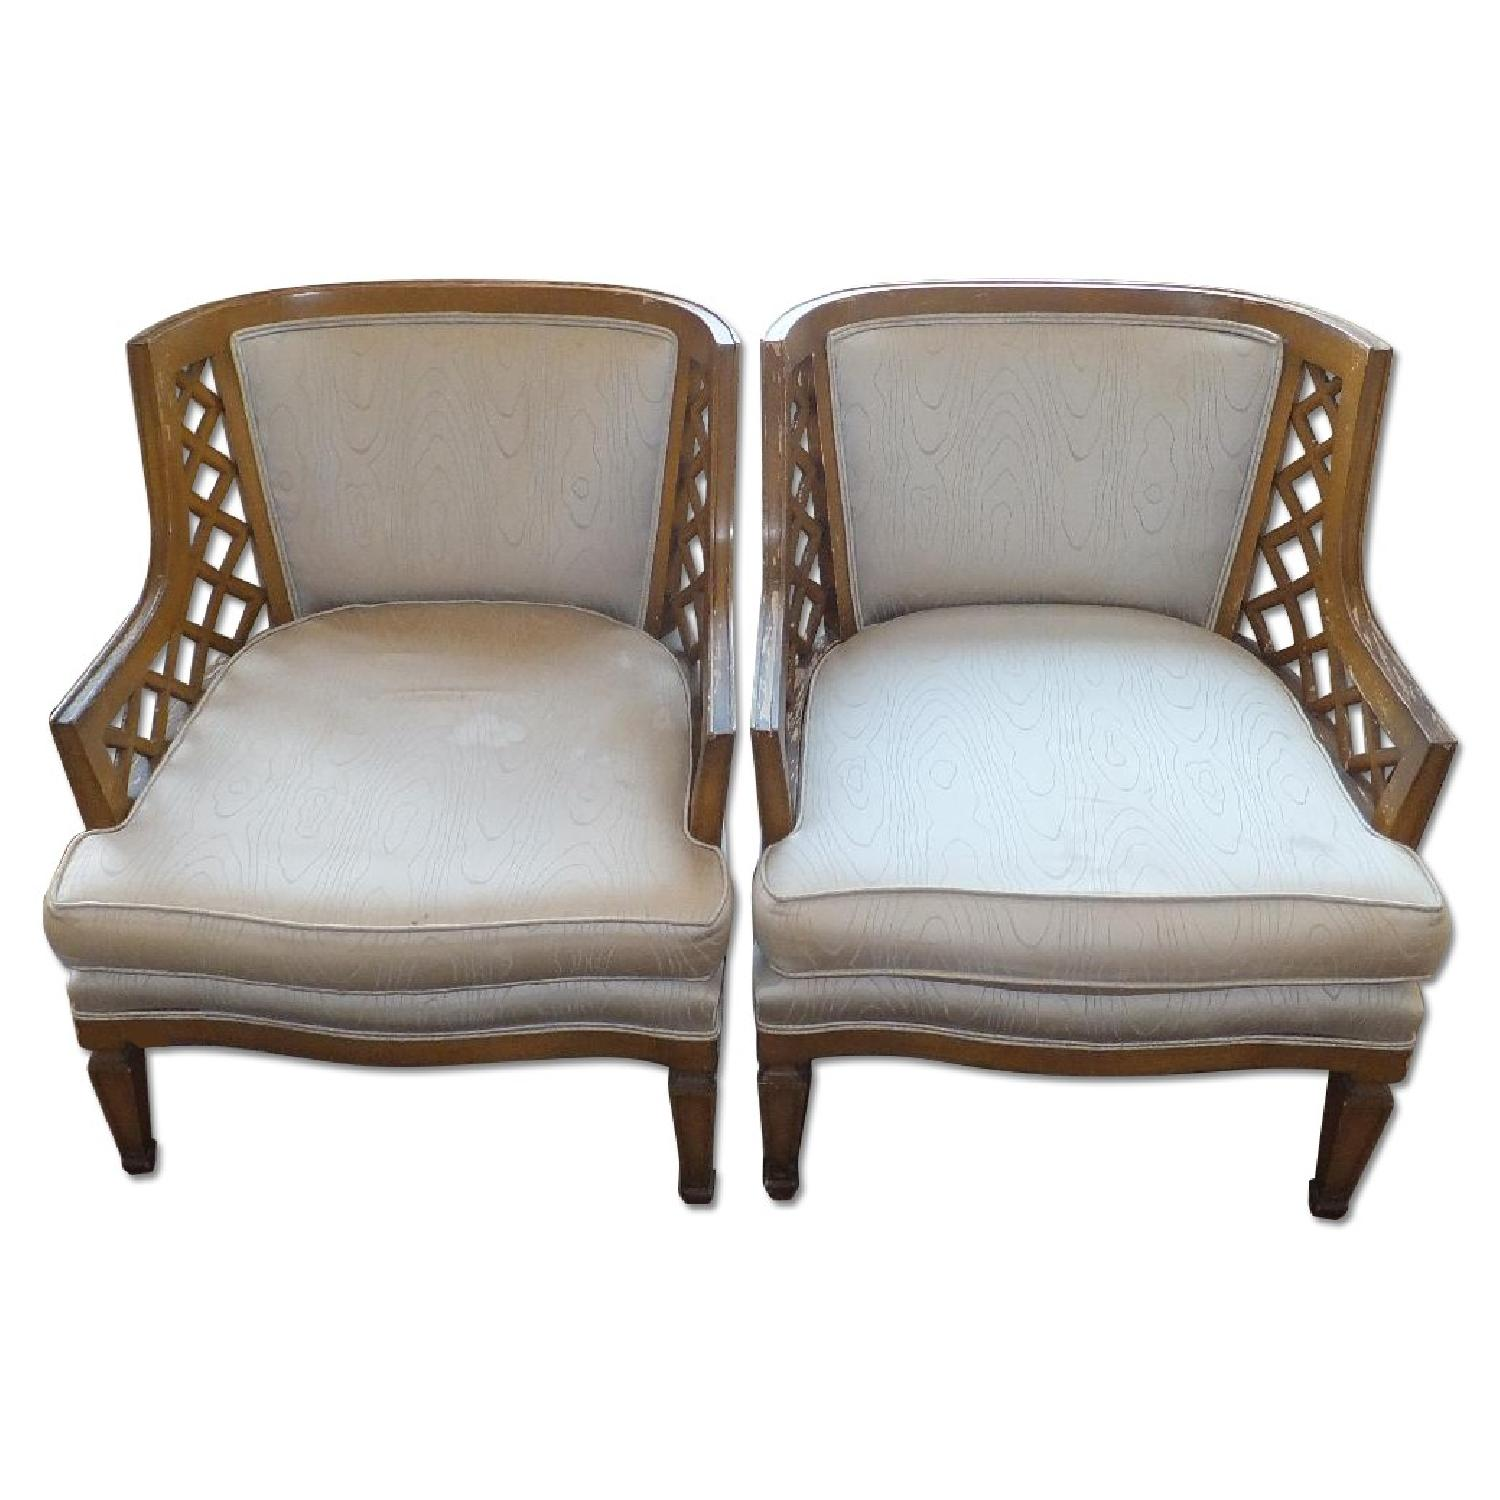 Foyer Accent Chairs : Vintage foyer accent chair aptdeco